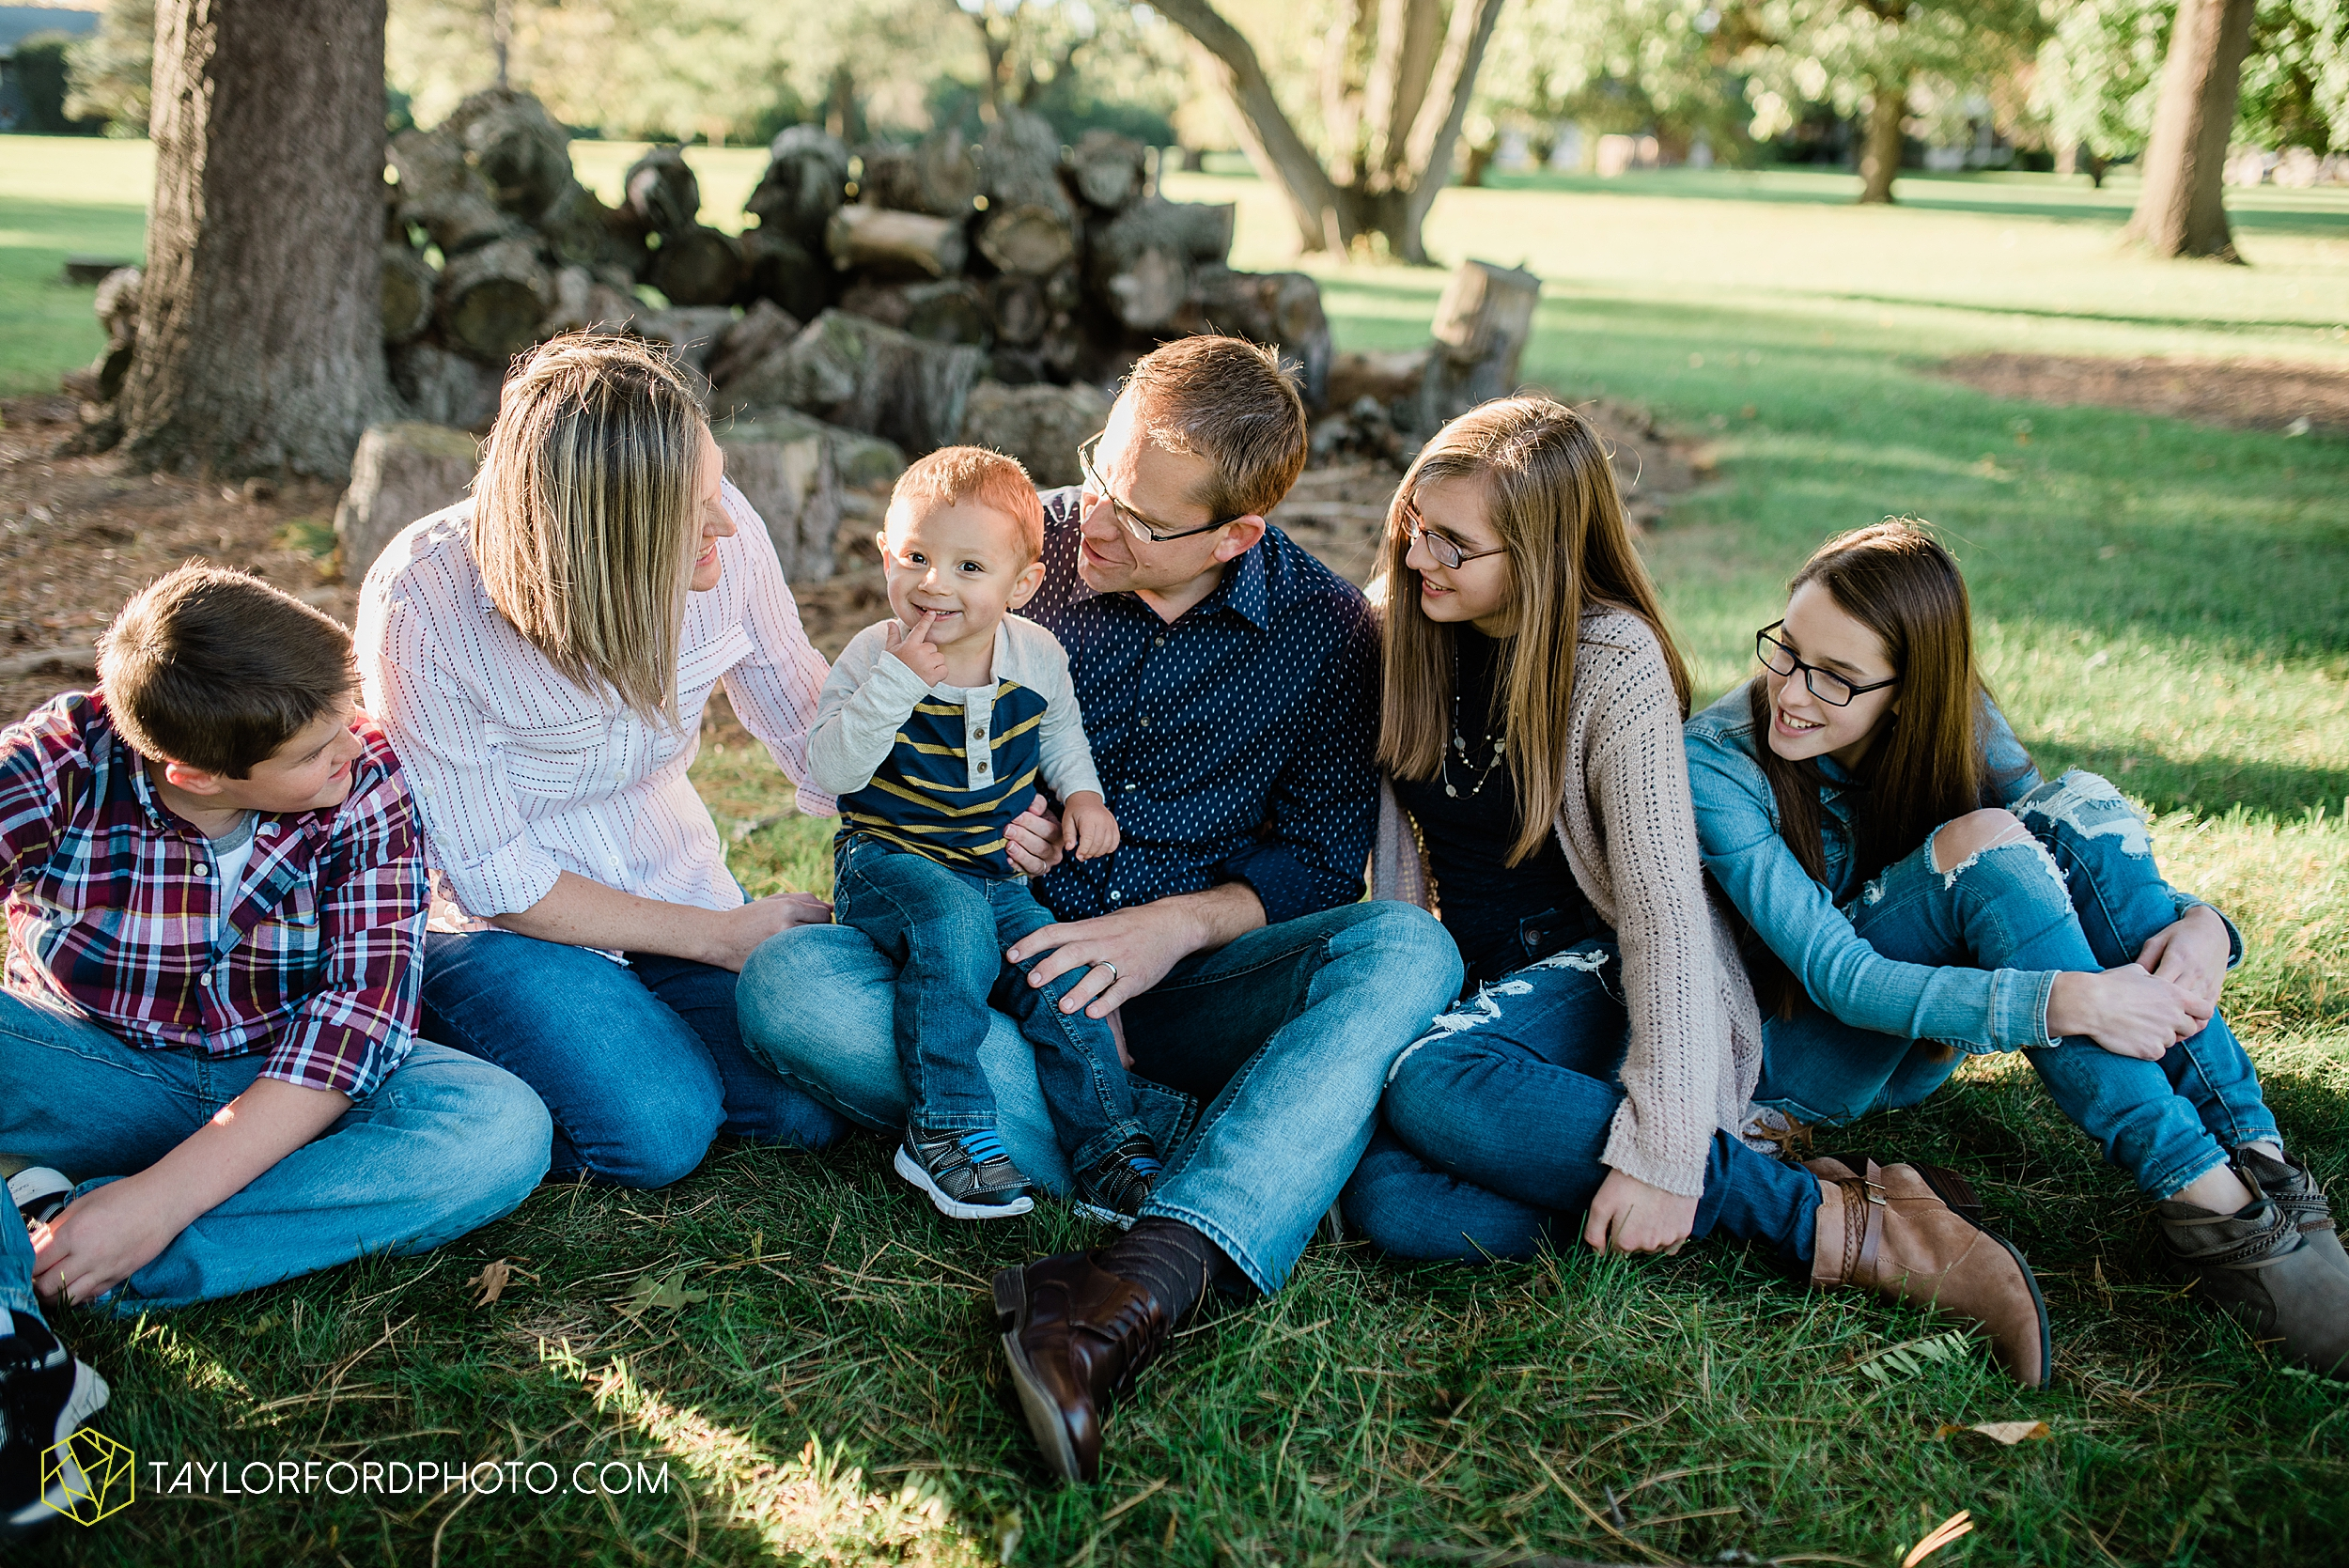 northwest-van-wert-ohio-backyard-at-home-outdoor-natural-light-stollerfamily-photographer-taylor-ford-photography_1241.jpg